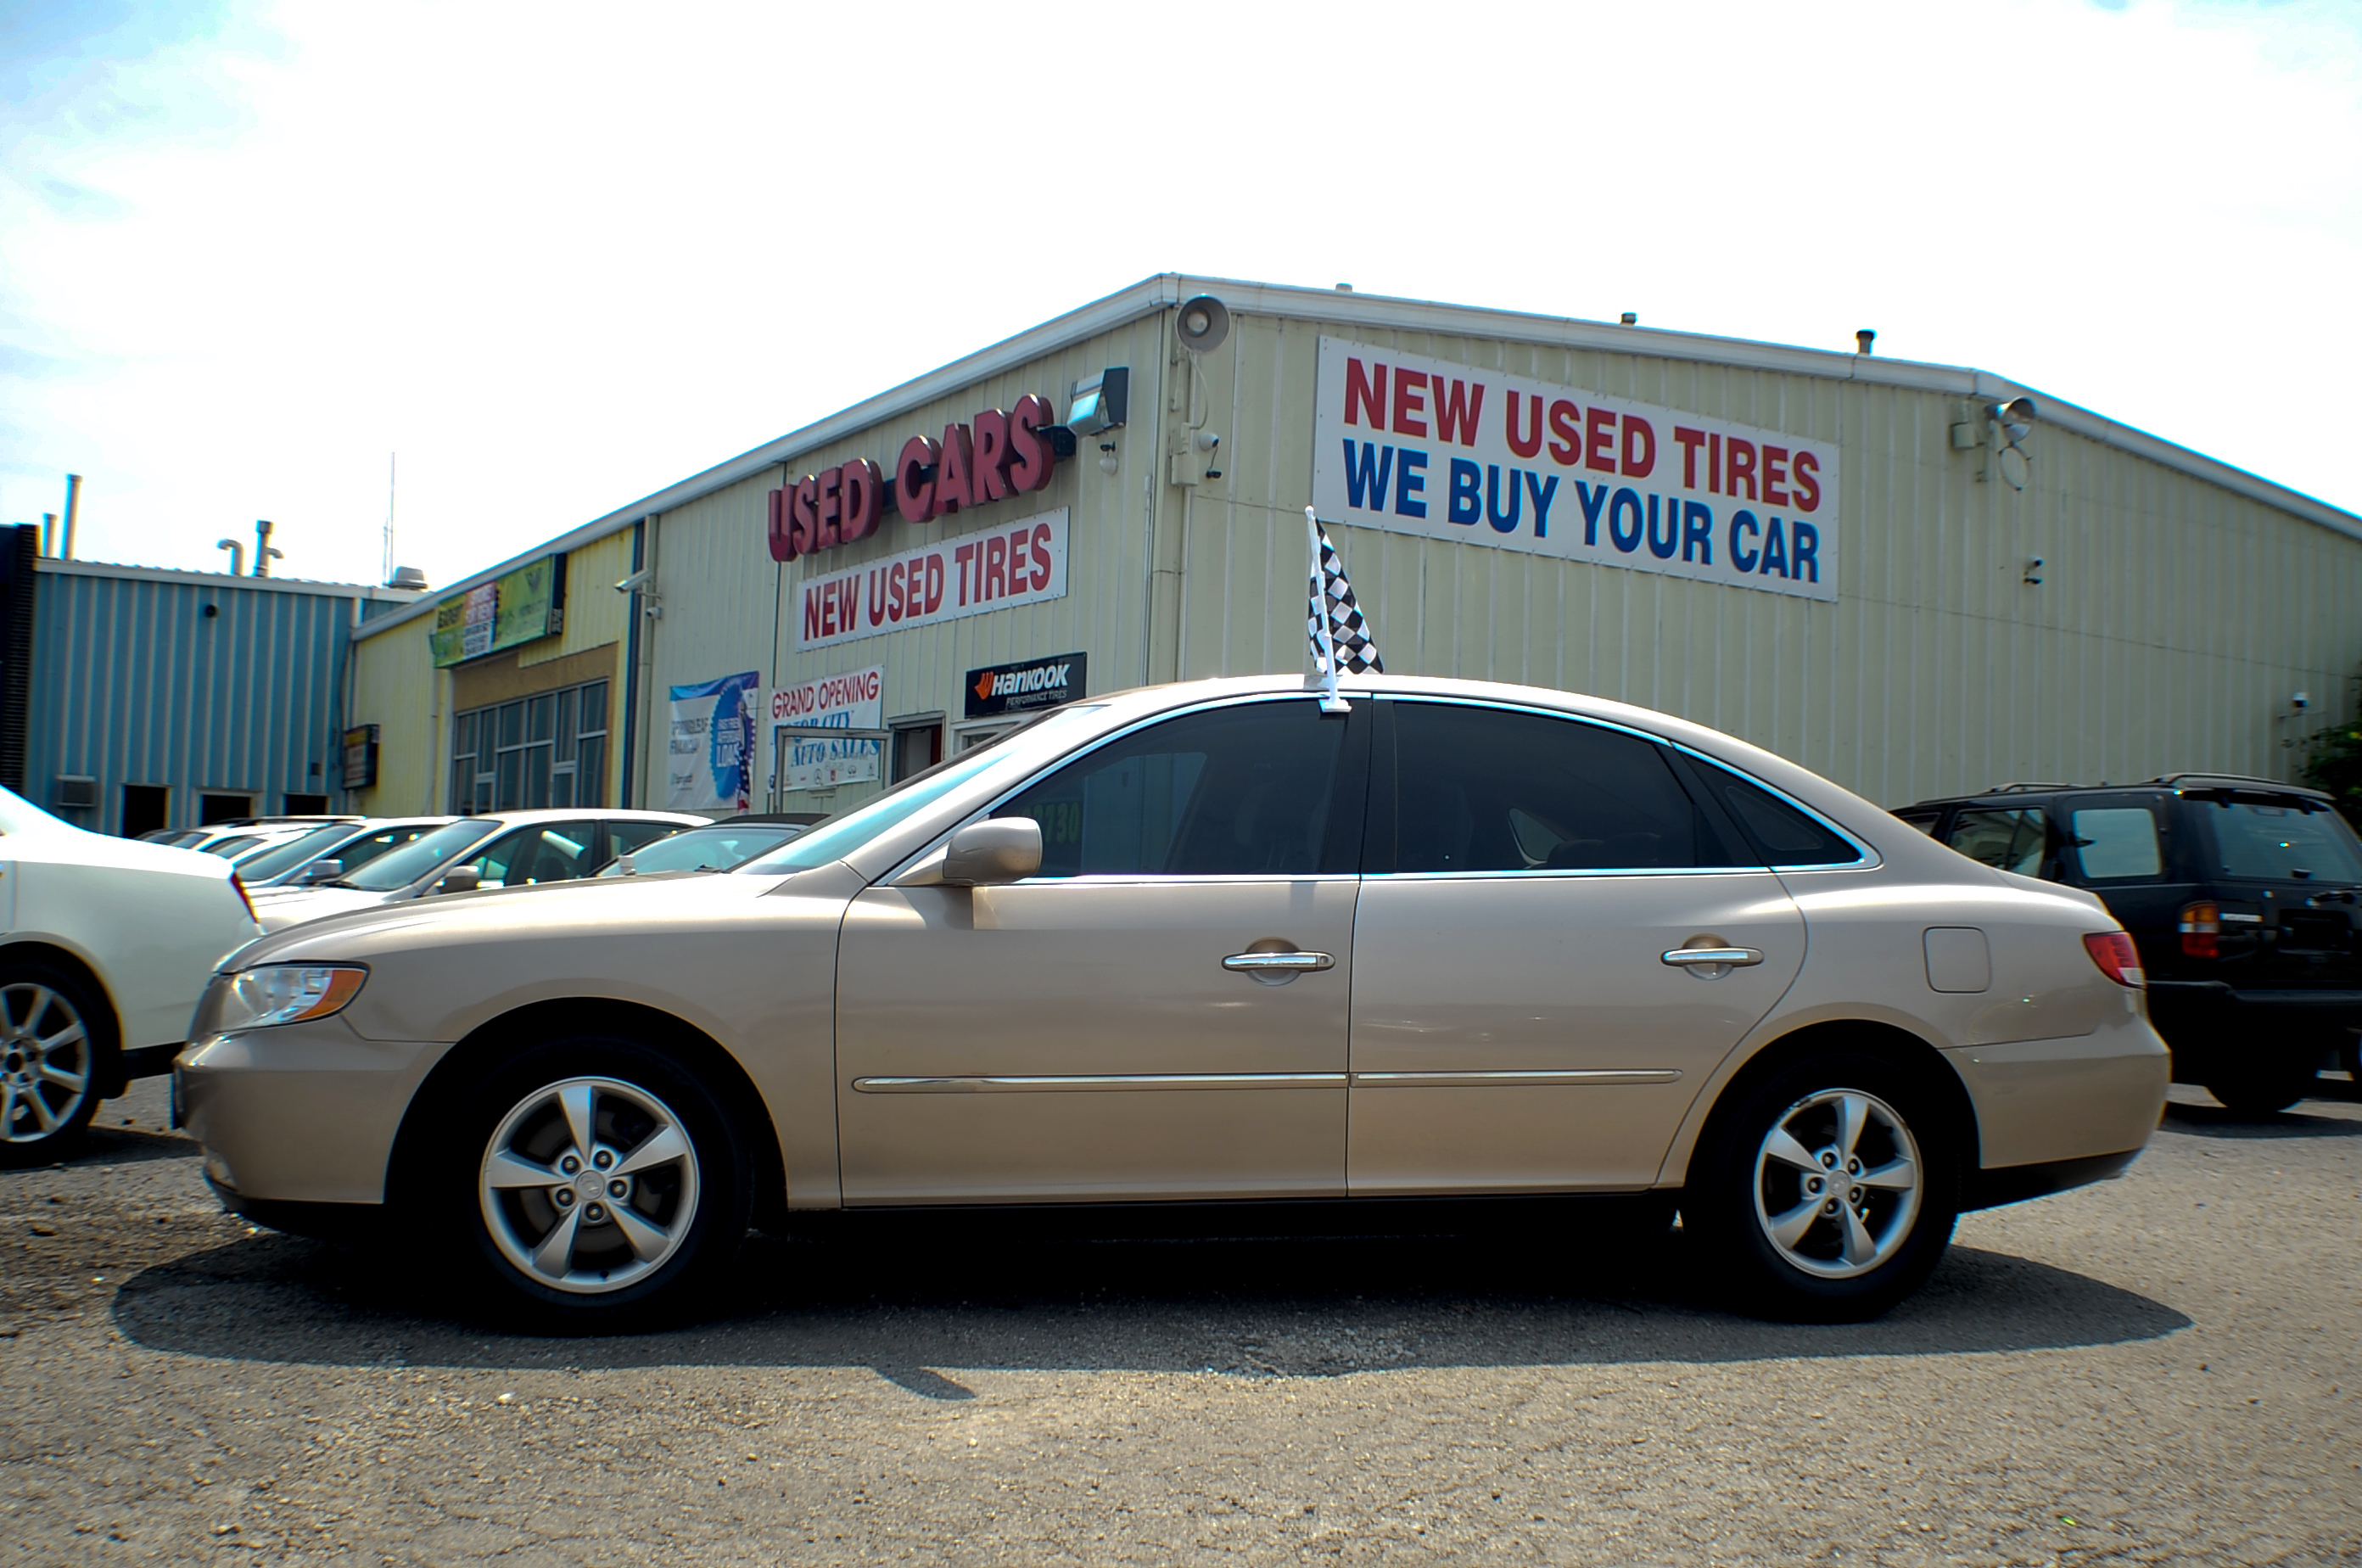 azera commons sale for flickr file us wikimedia hyundai skinnylawyer wiki